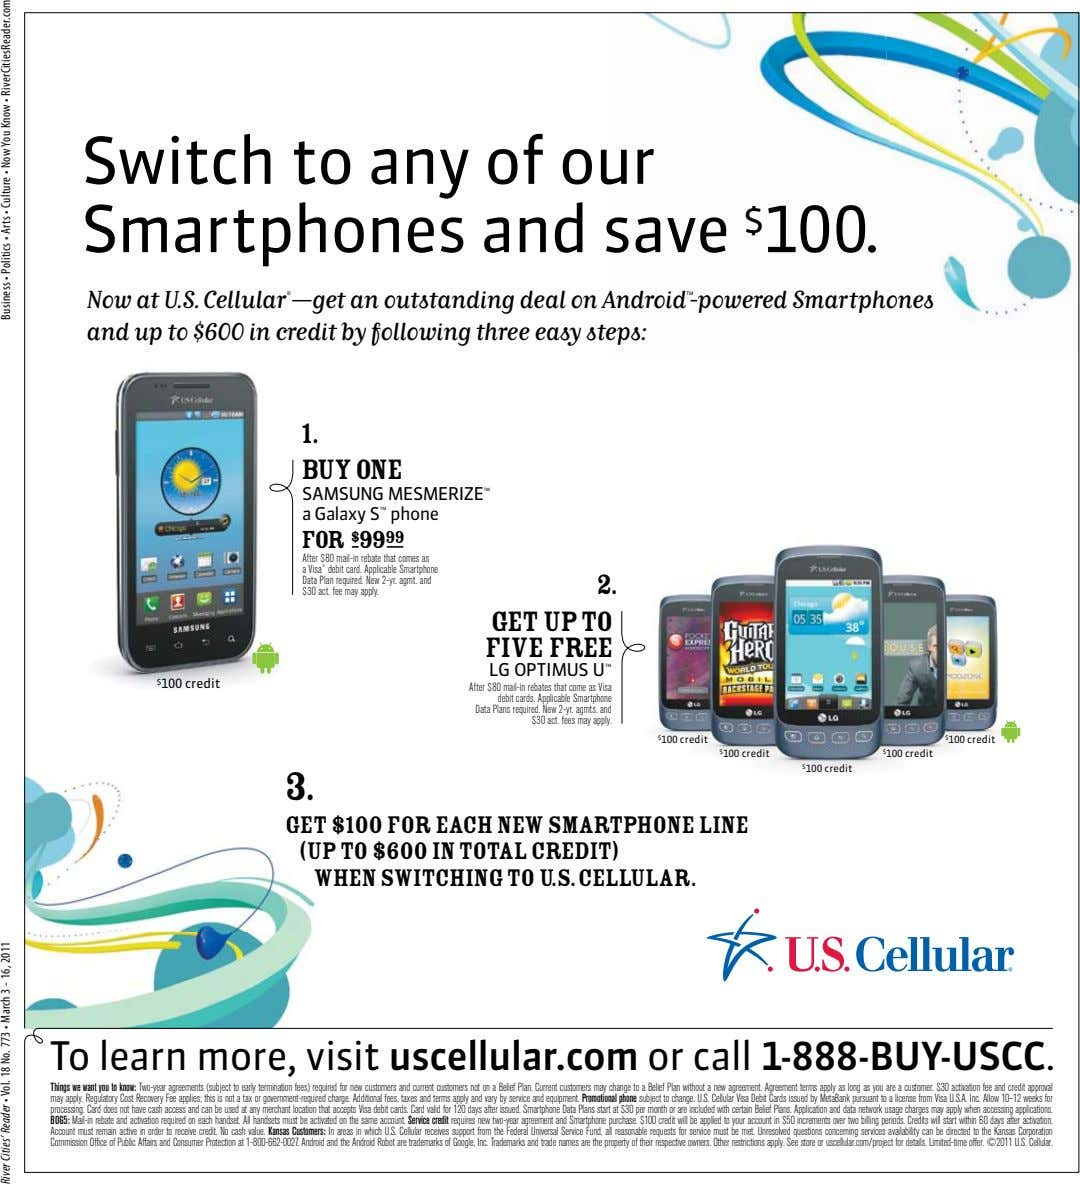 Switch to any of our Smartphones and save $ 100. Now at U.S. Cellular ®